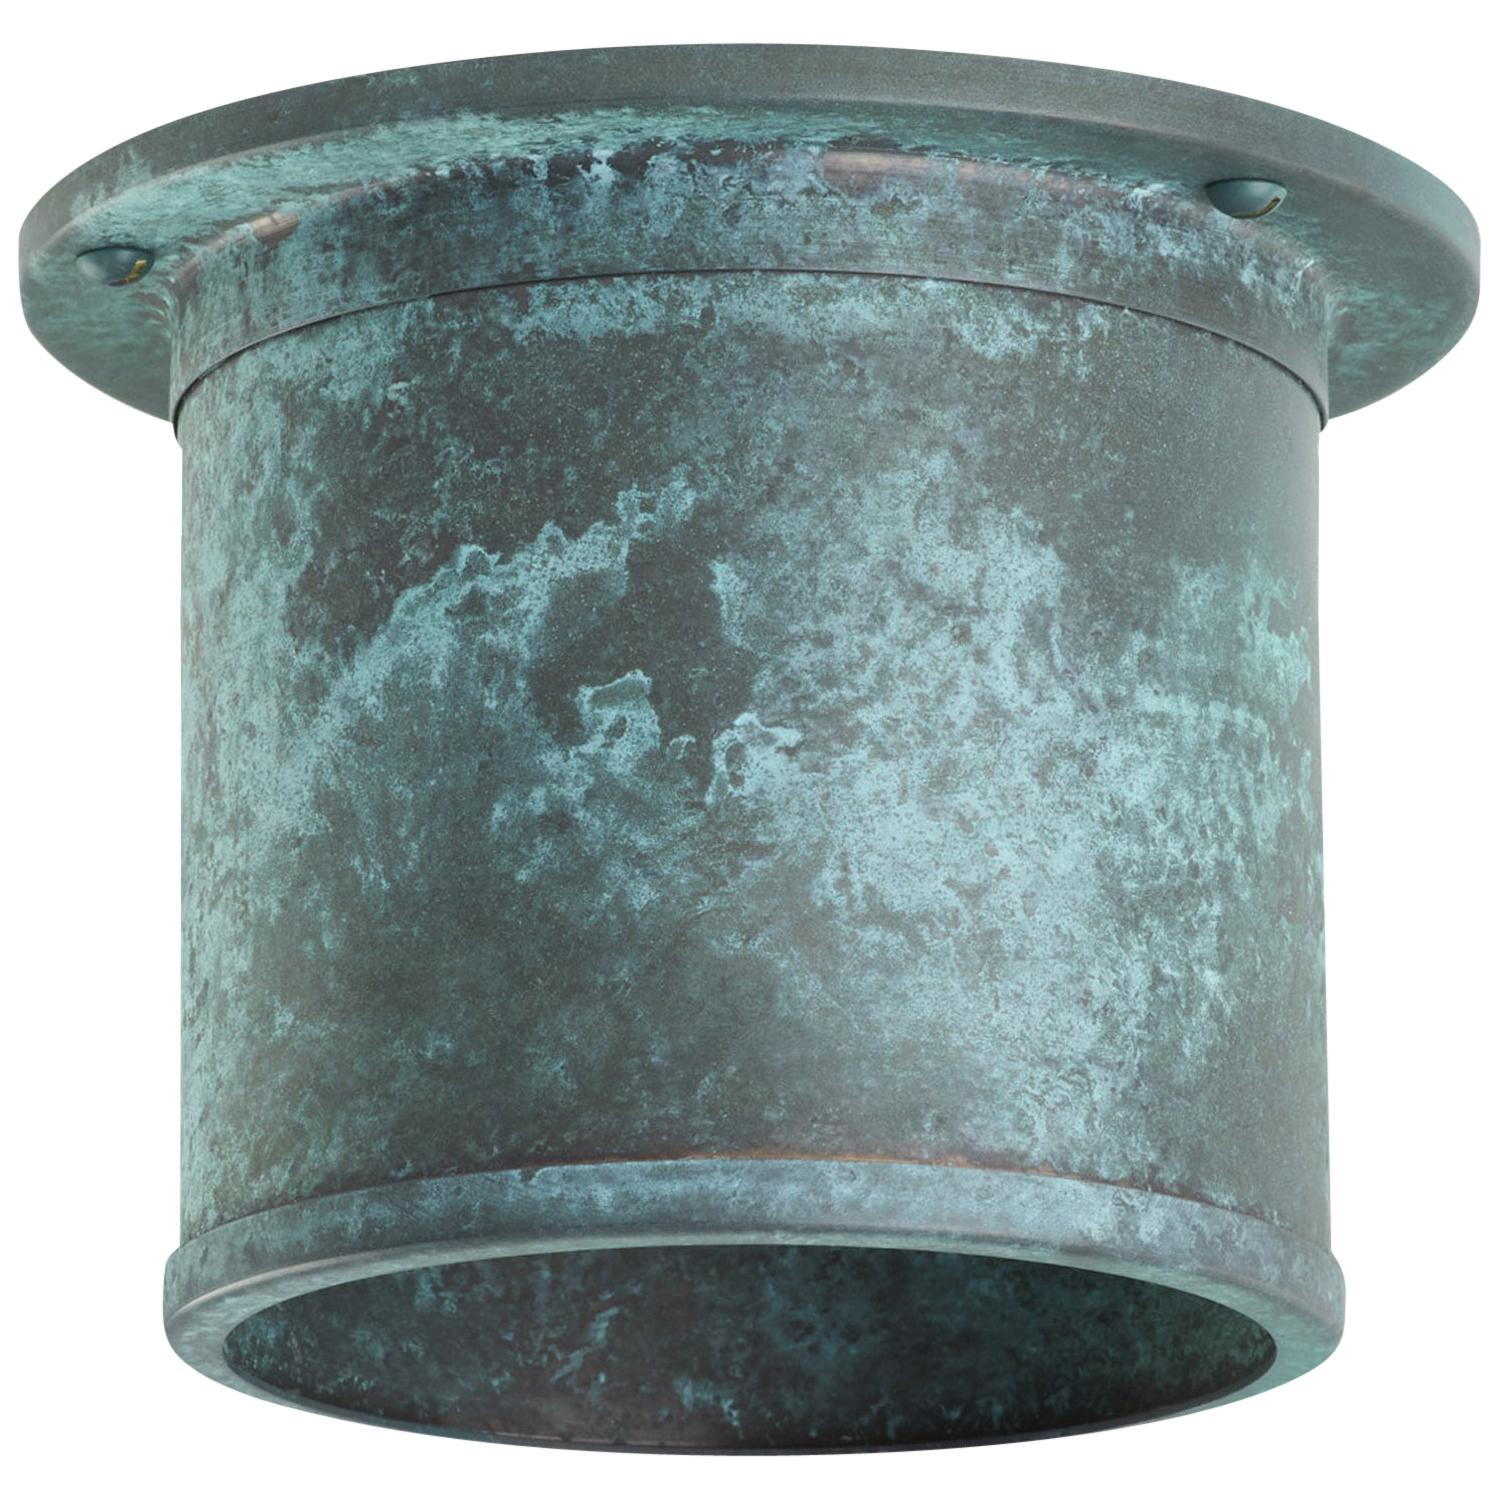 And Objects Compton Spot Diffuser, Verdigris Recessed Spot Light Shade